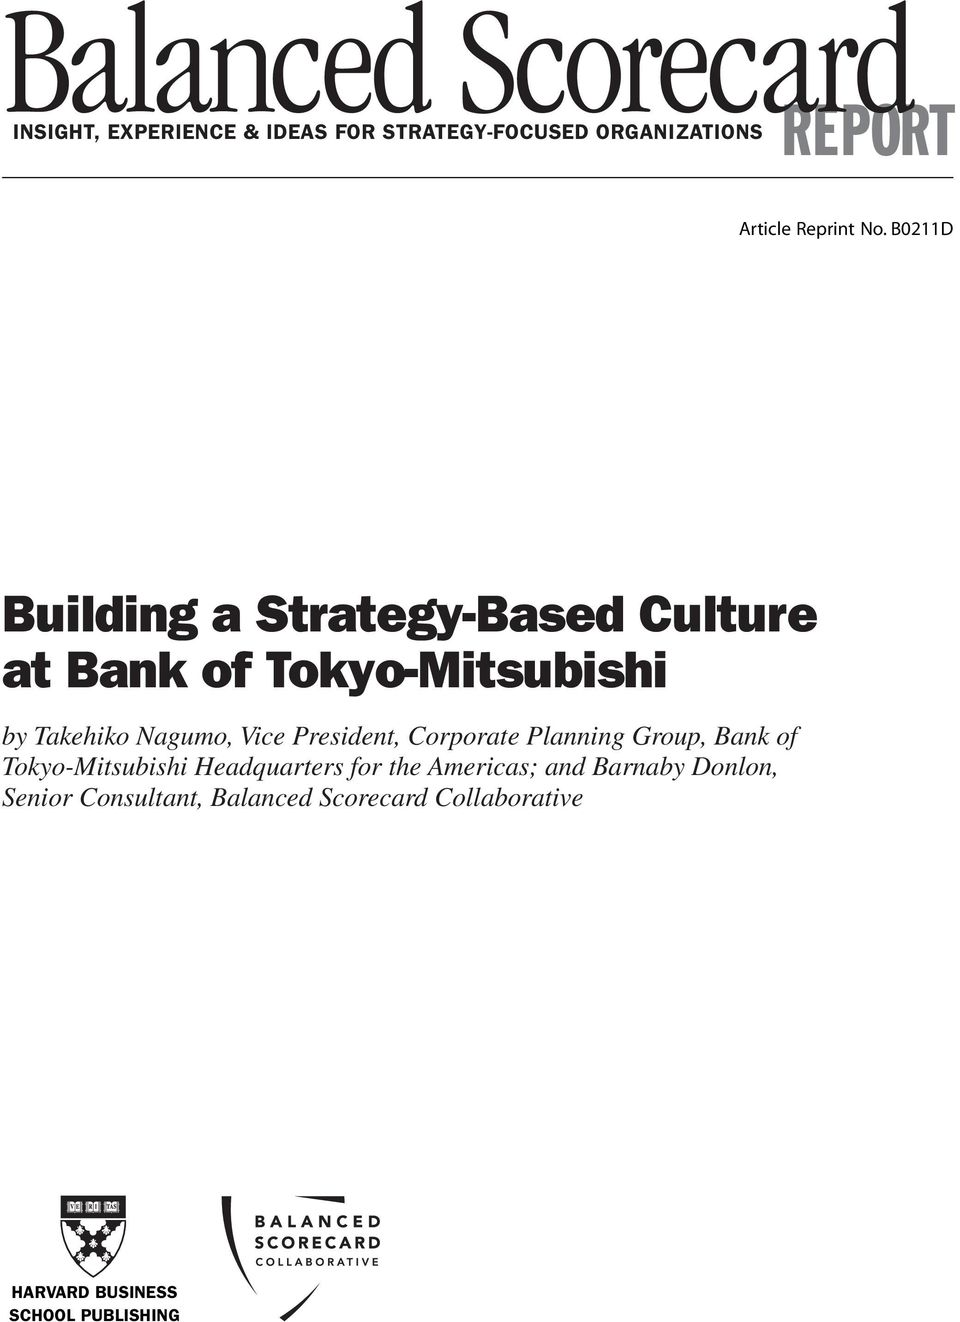 INSIGHT, EXPERIENCE & IDEAS FOR STRATEGY-FOCUSED